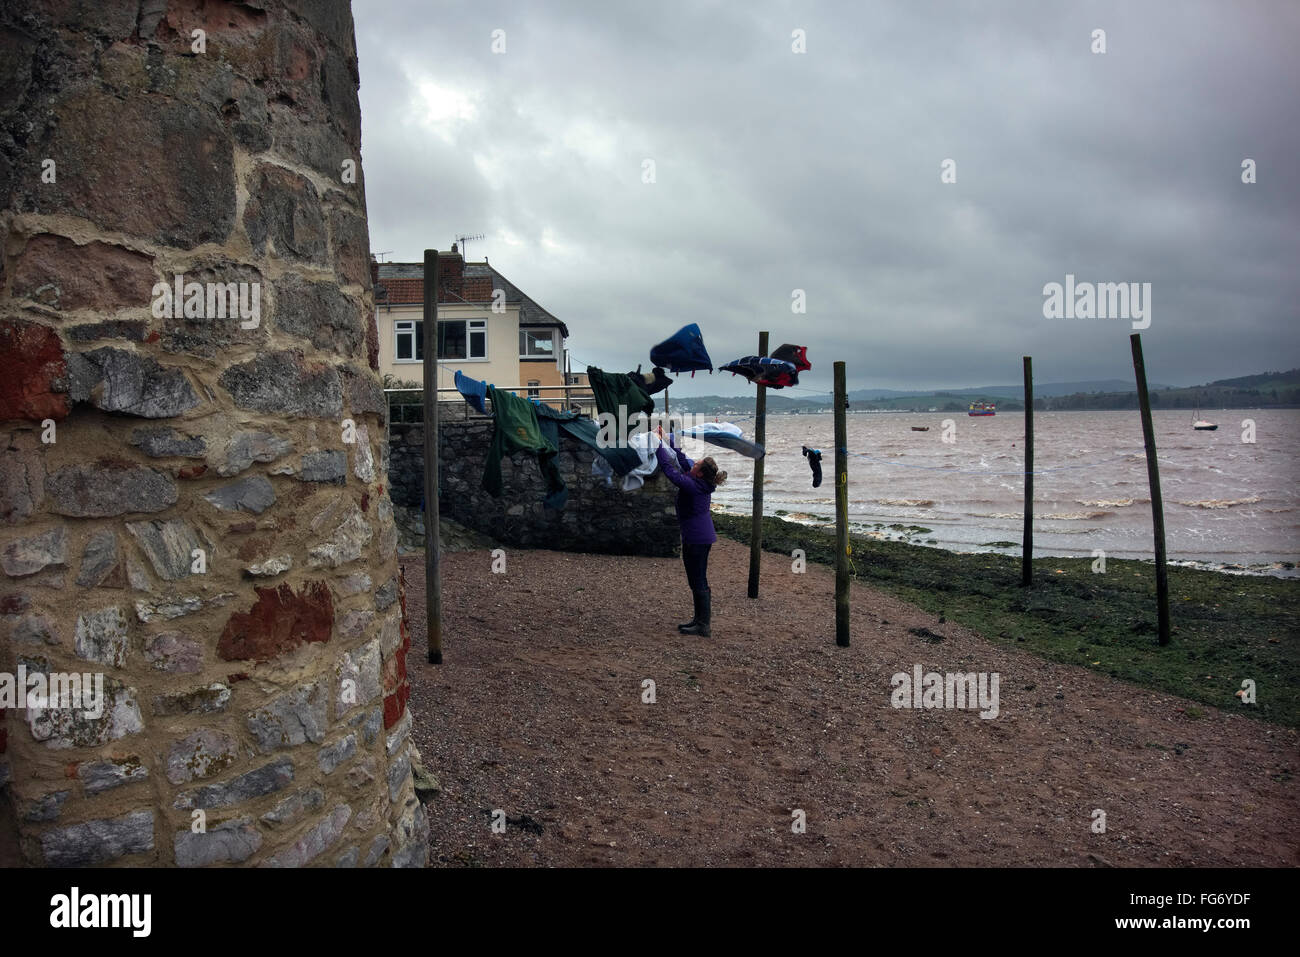 A drying breeze at Lympstone on the Exe estuary - Stock Image